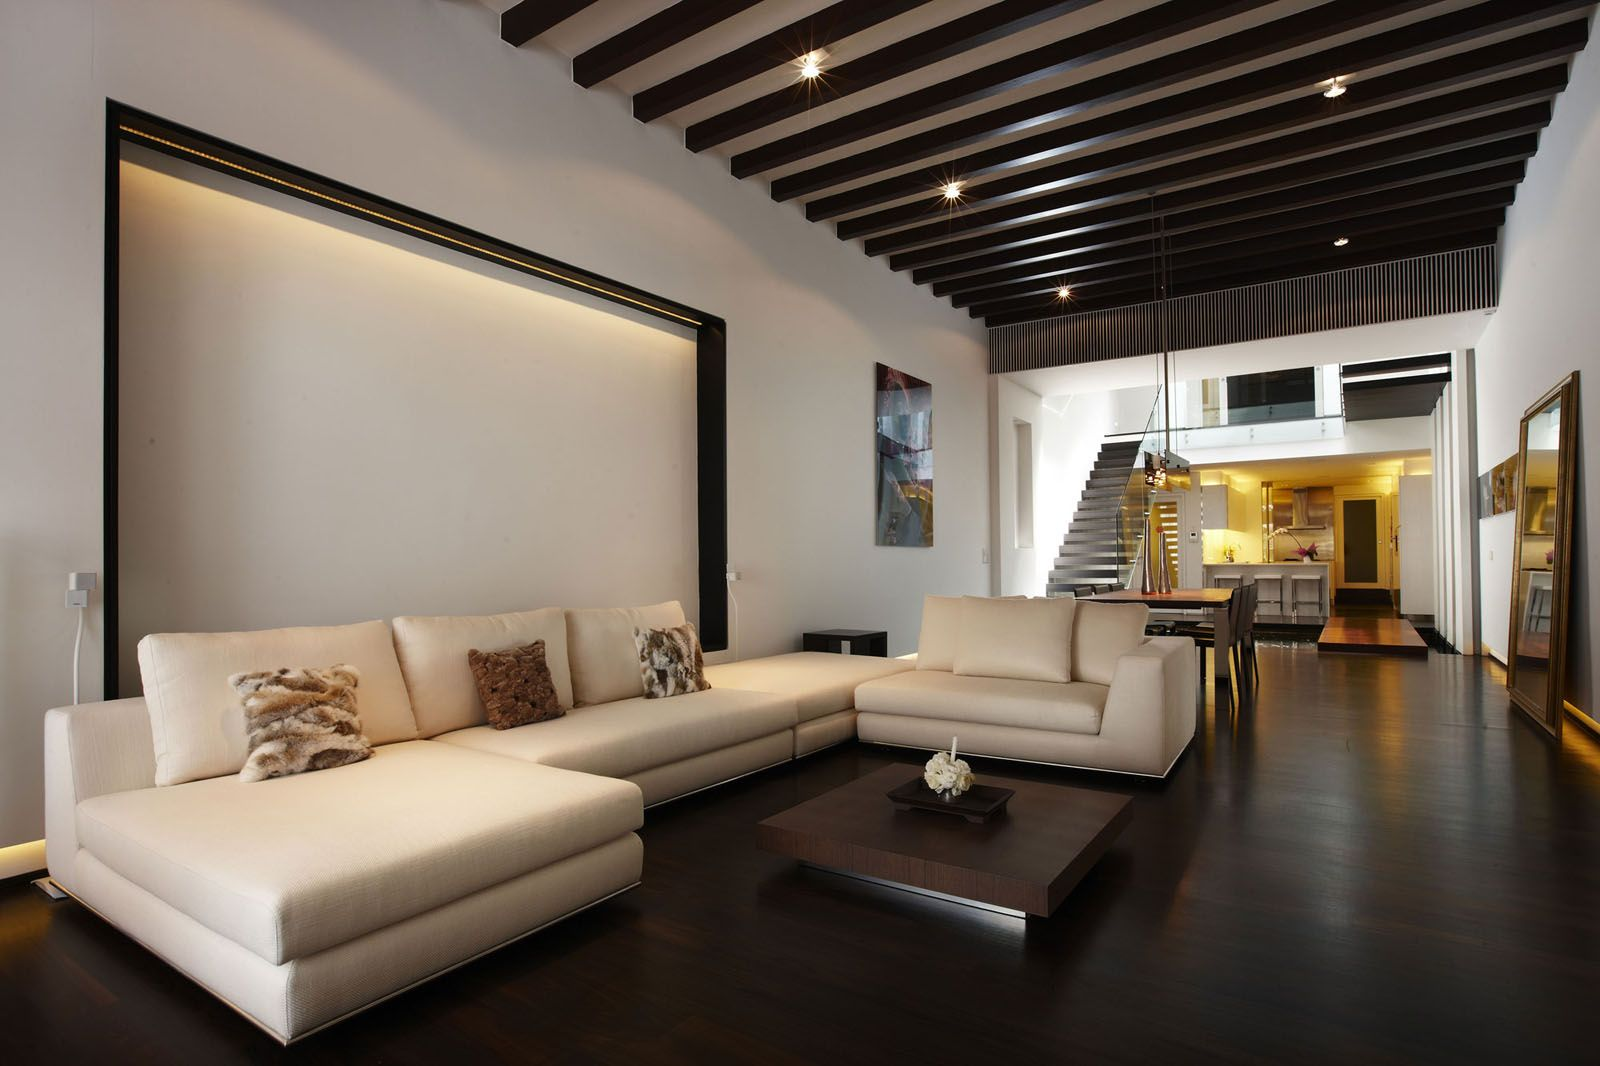 how much are interior designers - Luxury modern homes, Modern homes and Shophouse on Pinterest